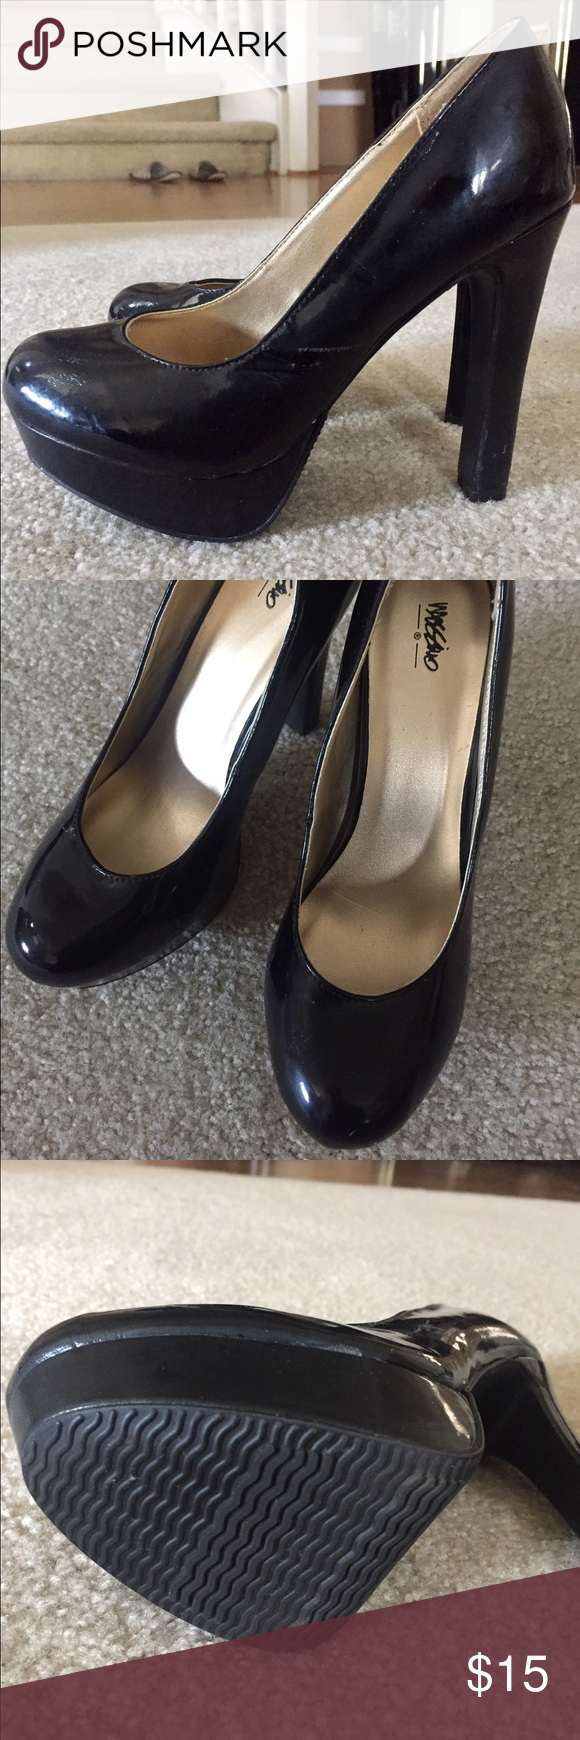 Black Patent Pumps Cute black high heeled pumps! Never worn, but for some reason has minimal scuffs (please see photo). Maybe from storing with my other shoes. Other than that, they are in great condition. Almost like new! Shoes Platforms